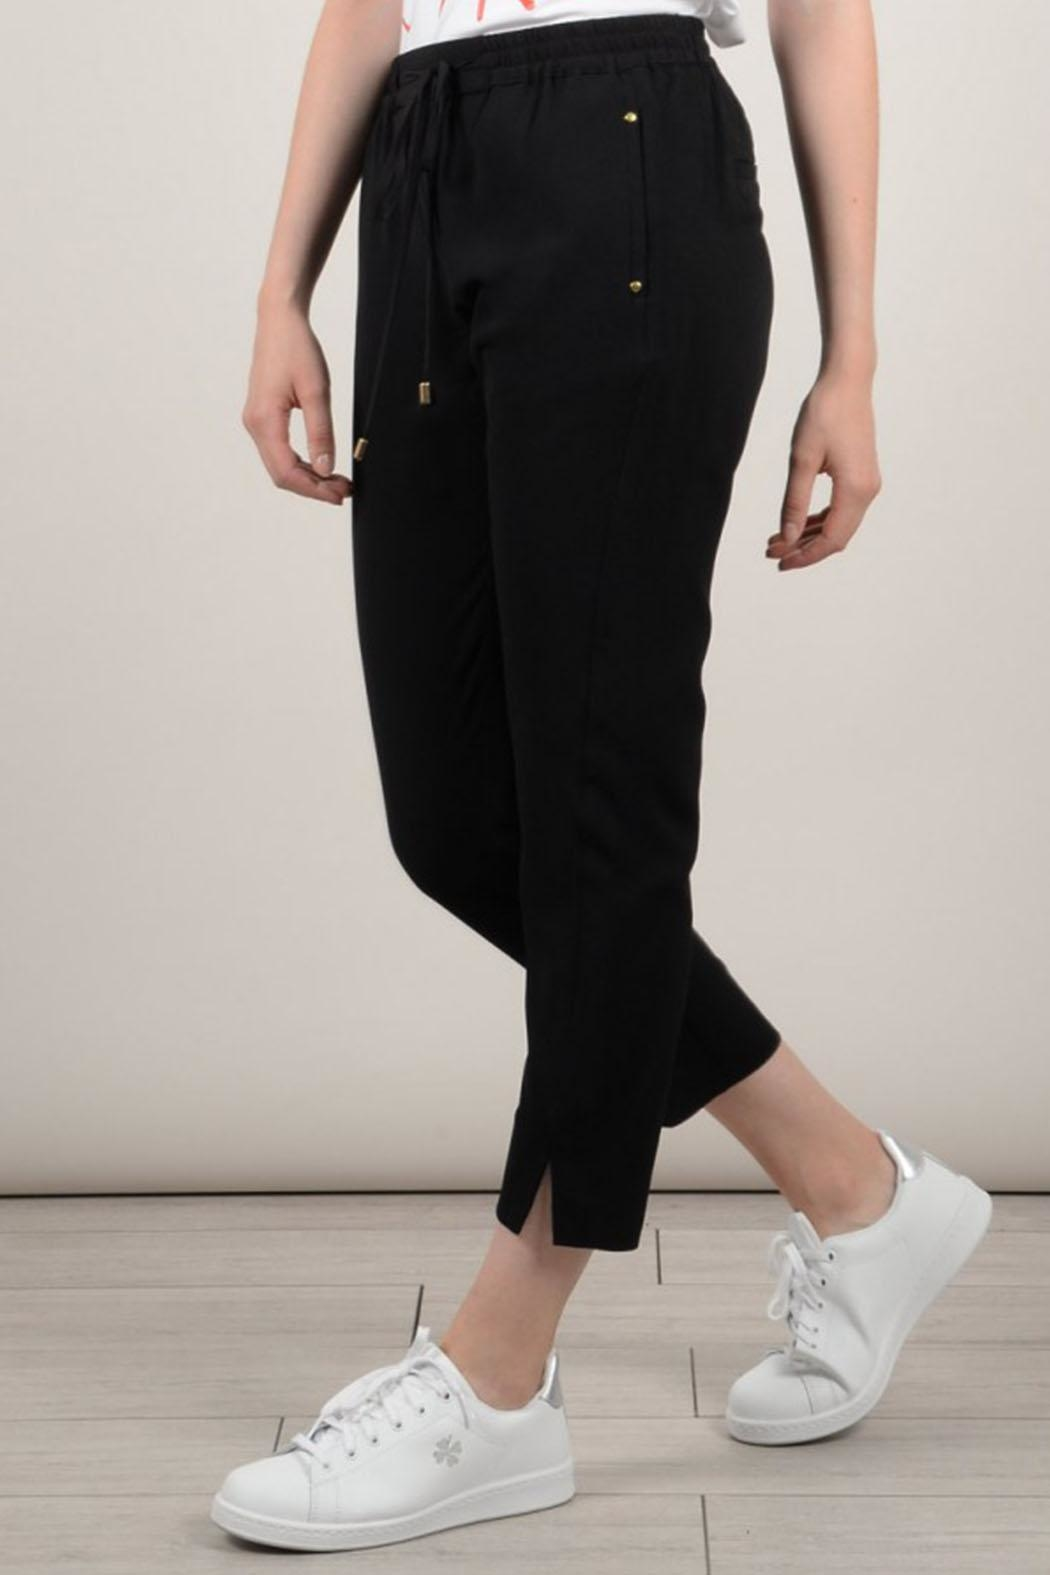 Molly Bracken Black Pants - Back Cropped Image